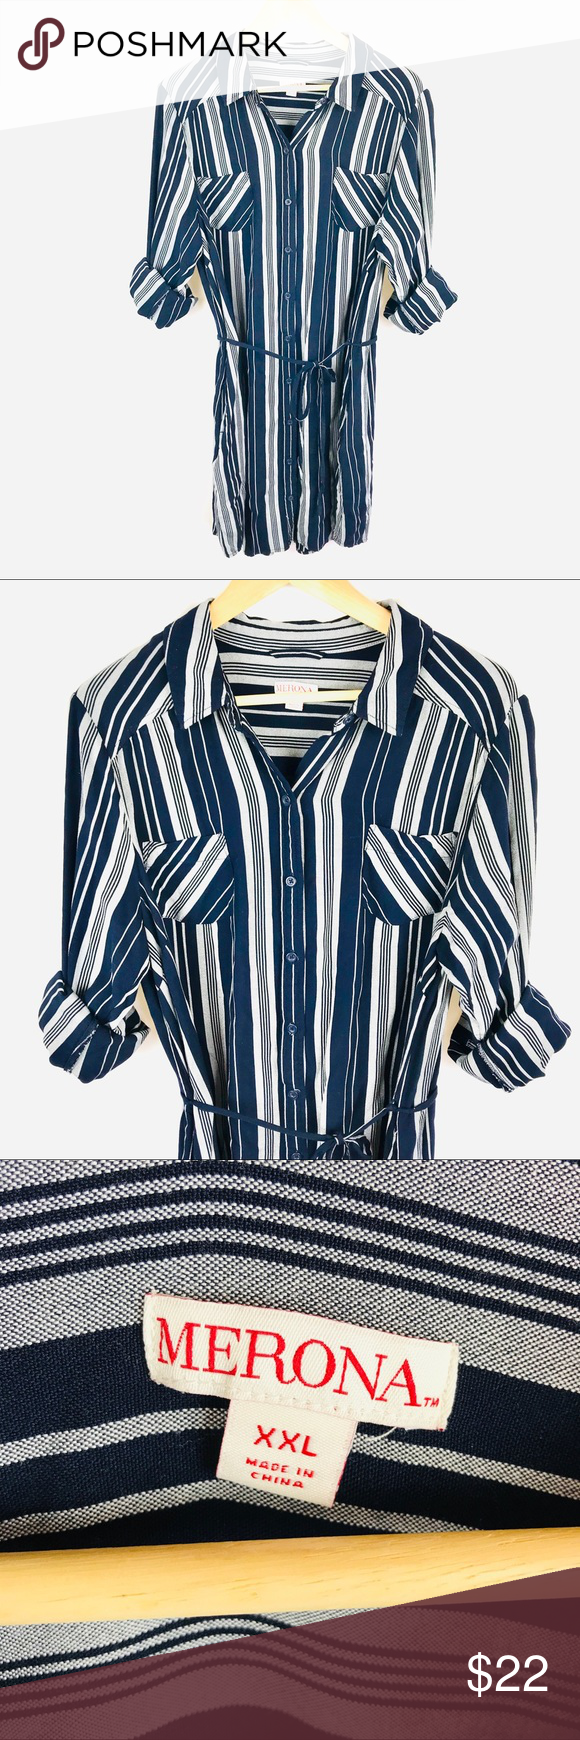 Merona Long Sleeve Button Down Shirt Dress Striped Excellent Used Condition 36 Length 23 Bust Measured Button Down Shirt Dress Striped Dress Clothes Design [ 1740 x 580 Pixel ]